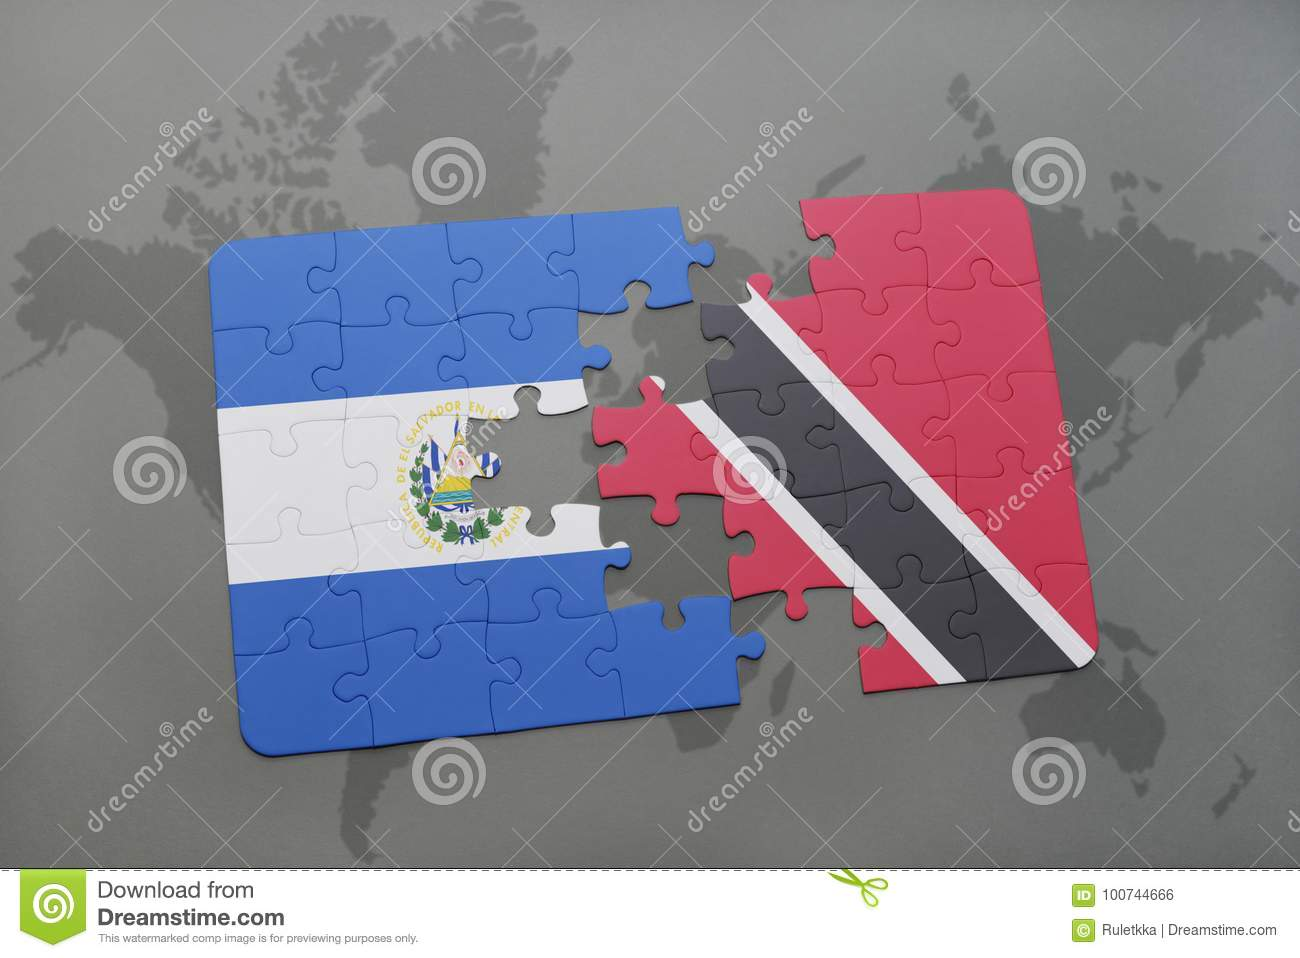 Puzzle with the national flag of el salvador and trinidad and tobago download puzzle with the national flag of el salvador and trinidad and tobago on a world gumiabroncs Gallery